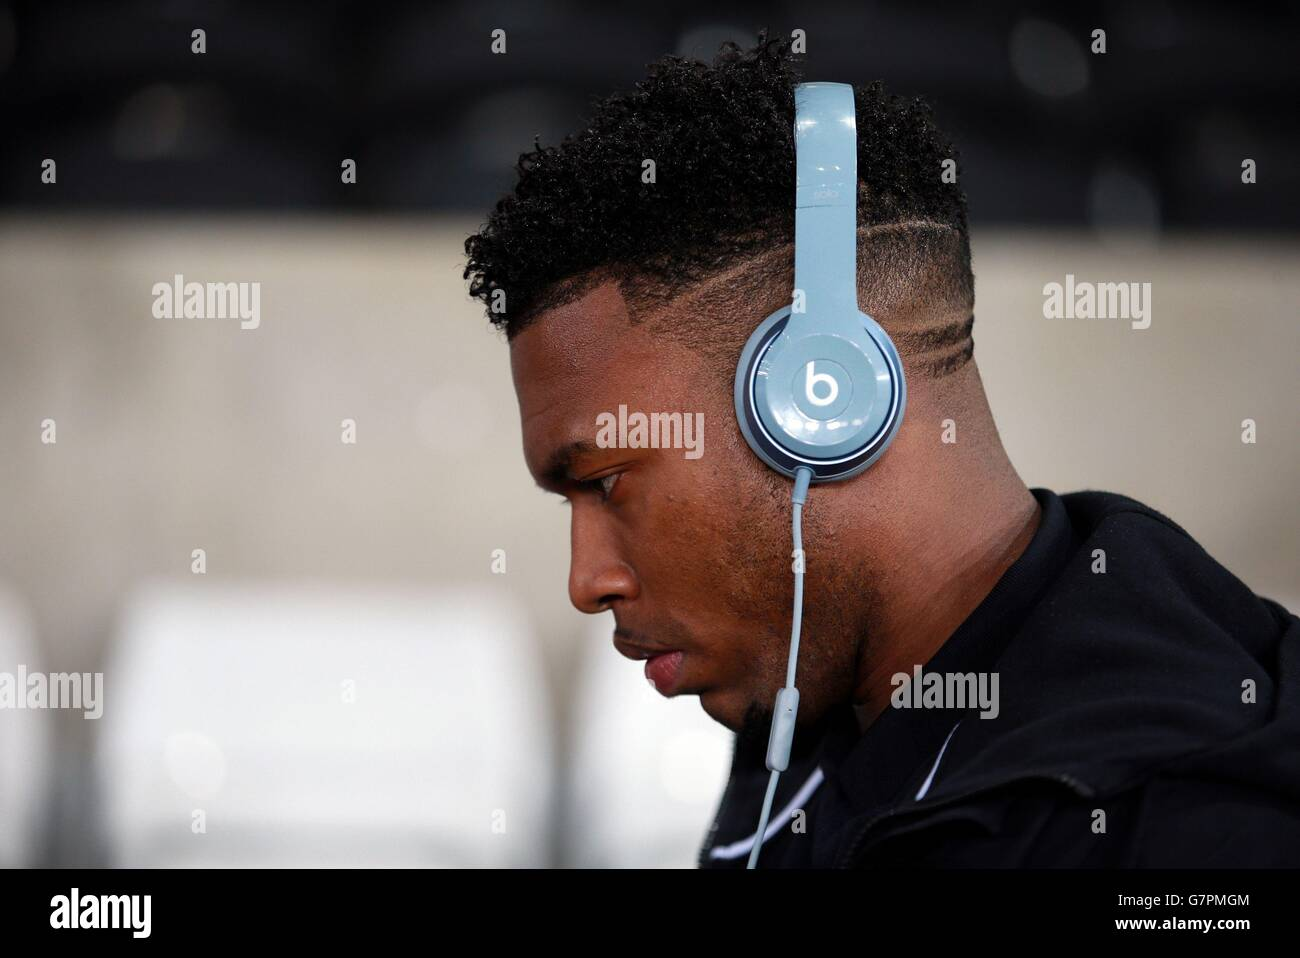 Beats Headphones Head Phones Soccer Swansea High Resolution Stock Photography And Images Alamy